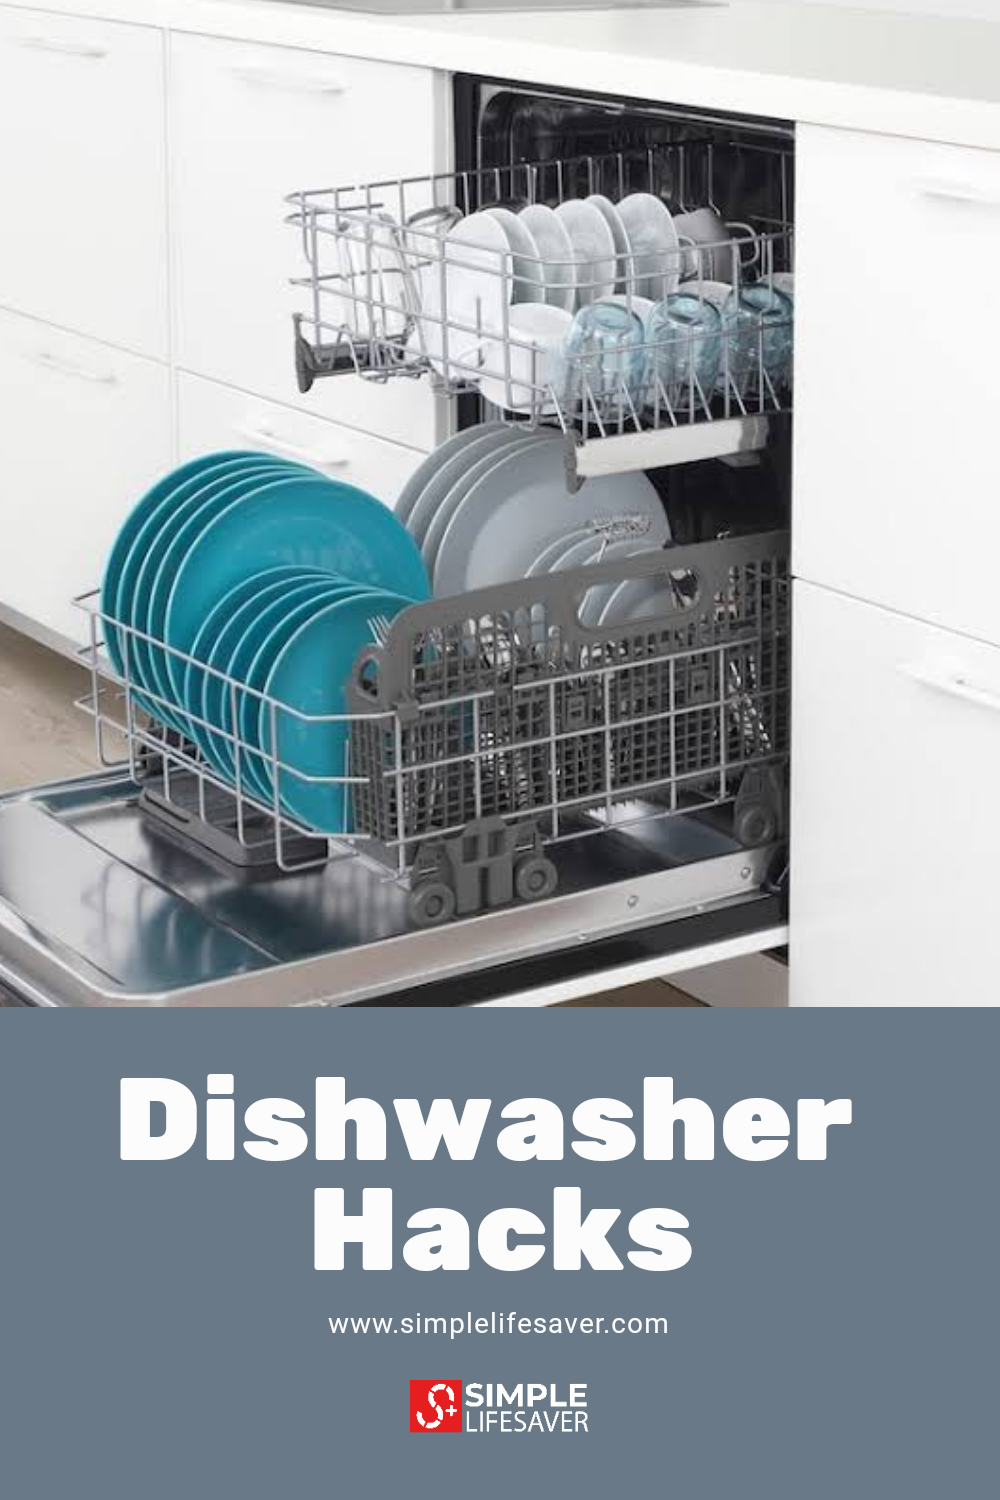 21 Dishwasher Hacks That Will Improve Your Health Dishwasher Racks Cleaning Hacks Dishwasher